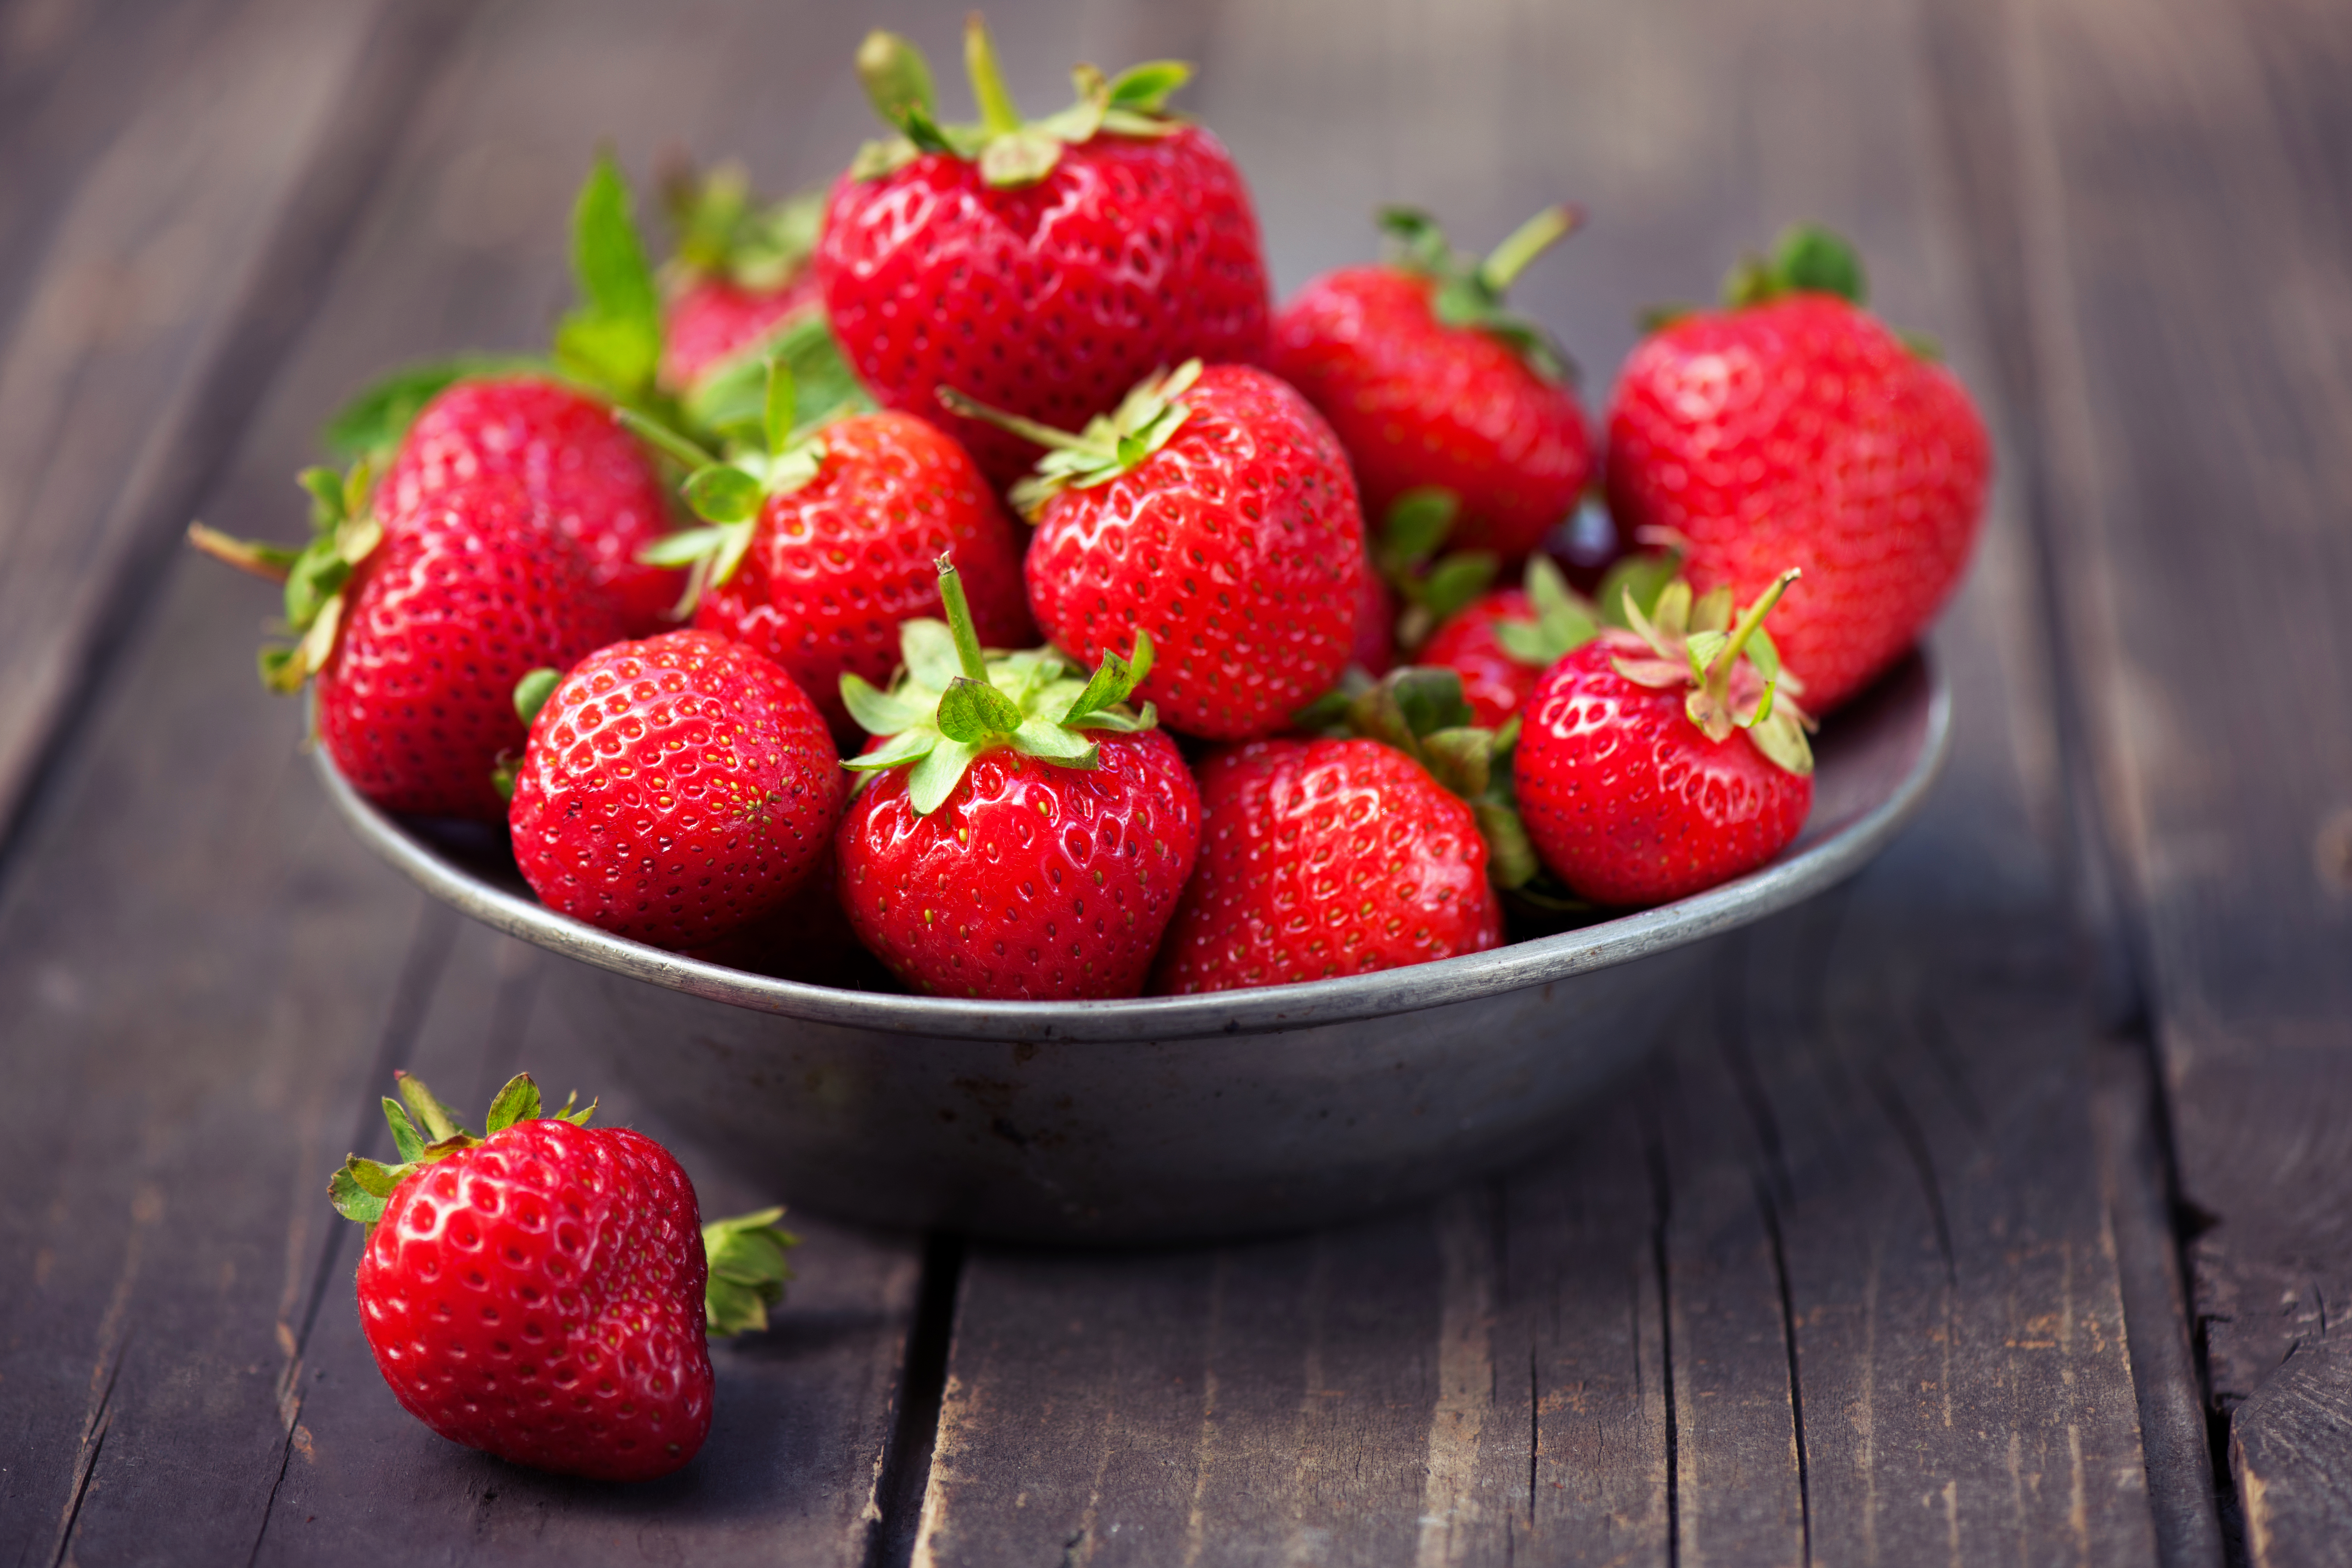 Use mushy strawberries for tasty morning smoothies